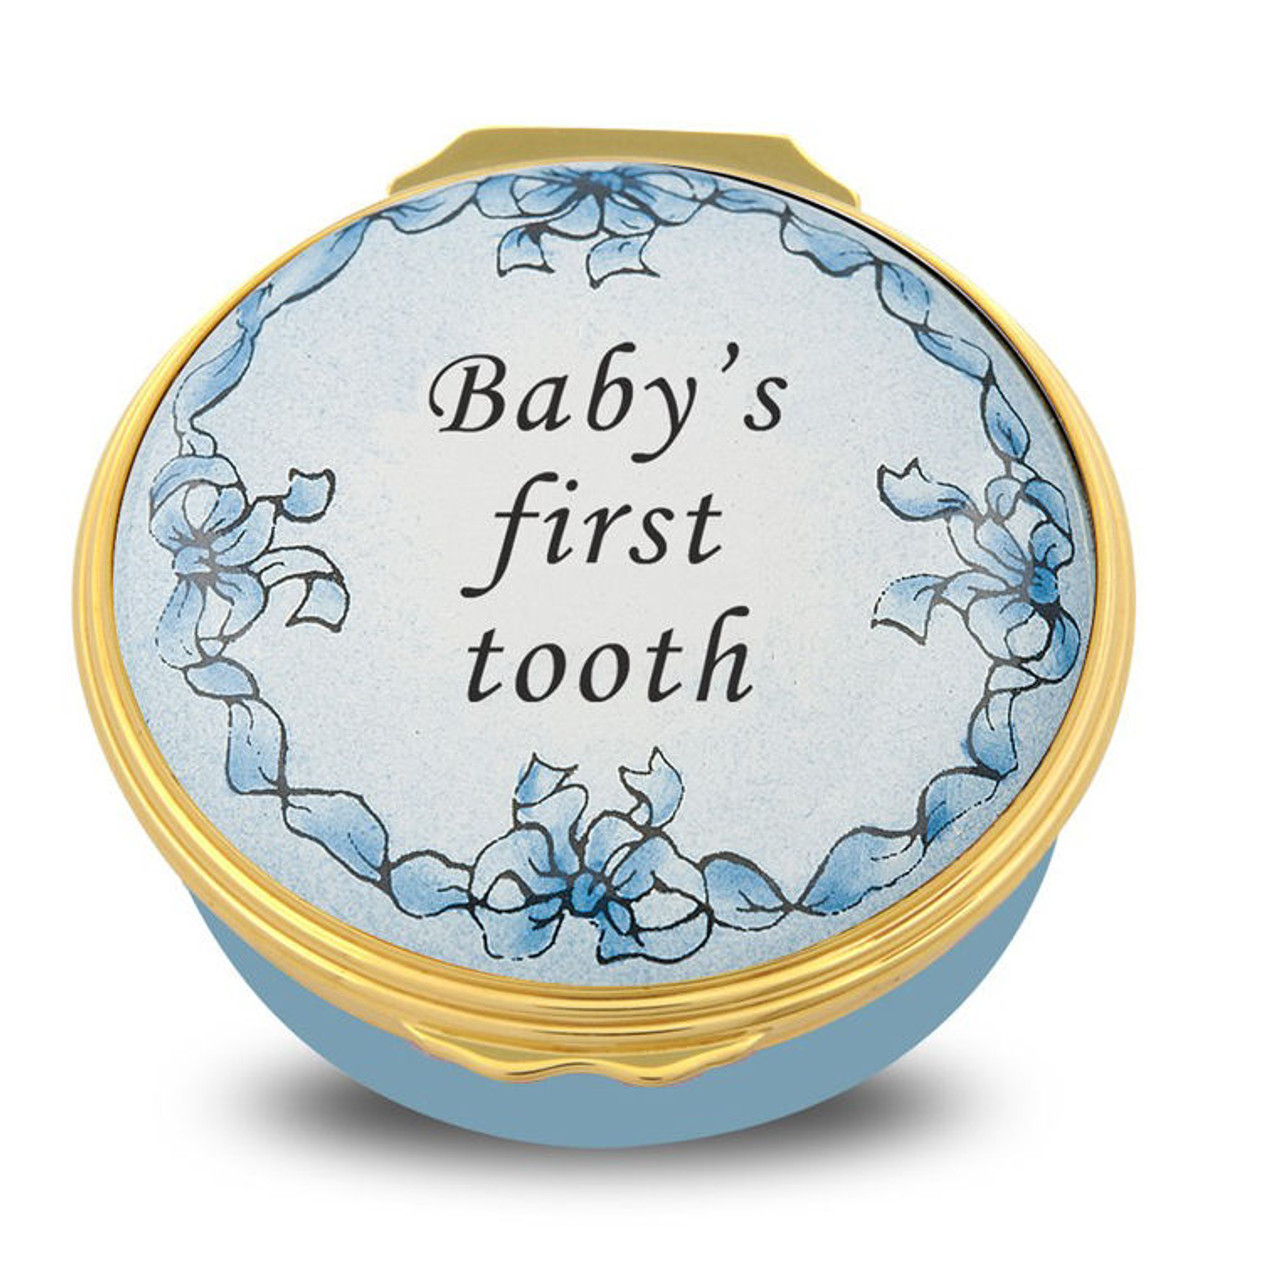 Halcyon Days Baby's First Tooth Blue ENBFT1201G